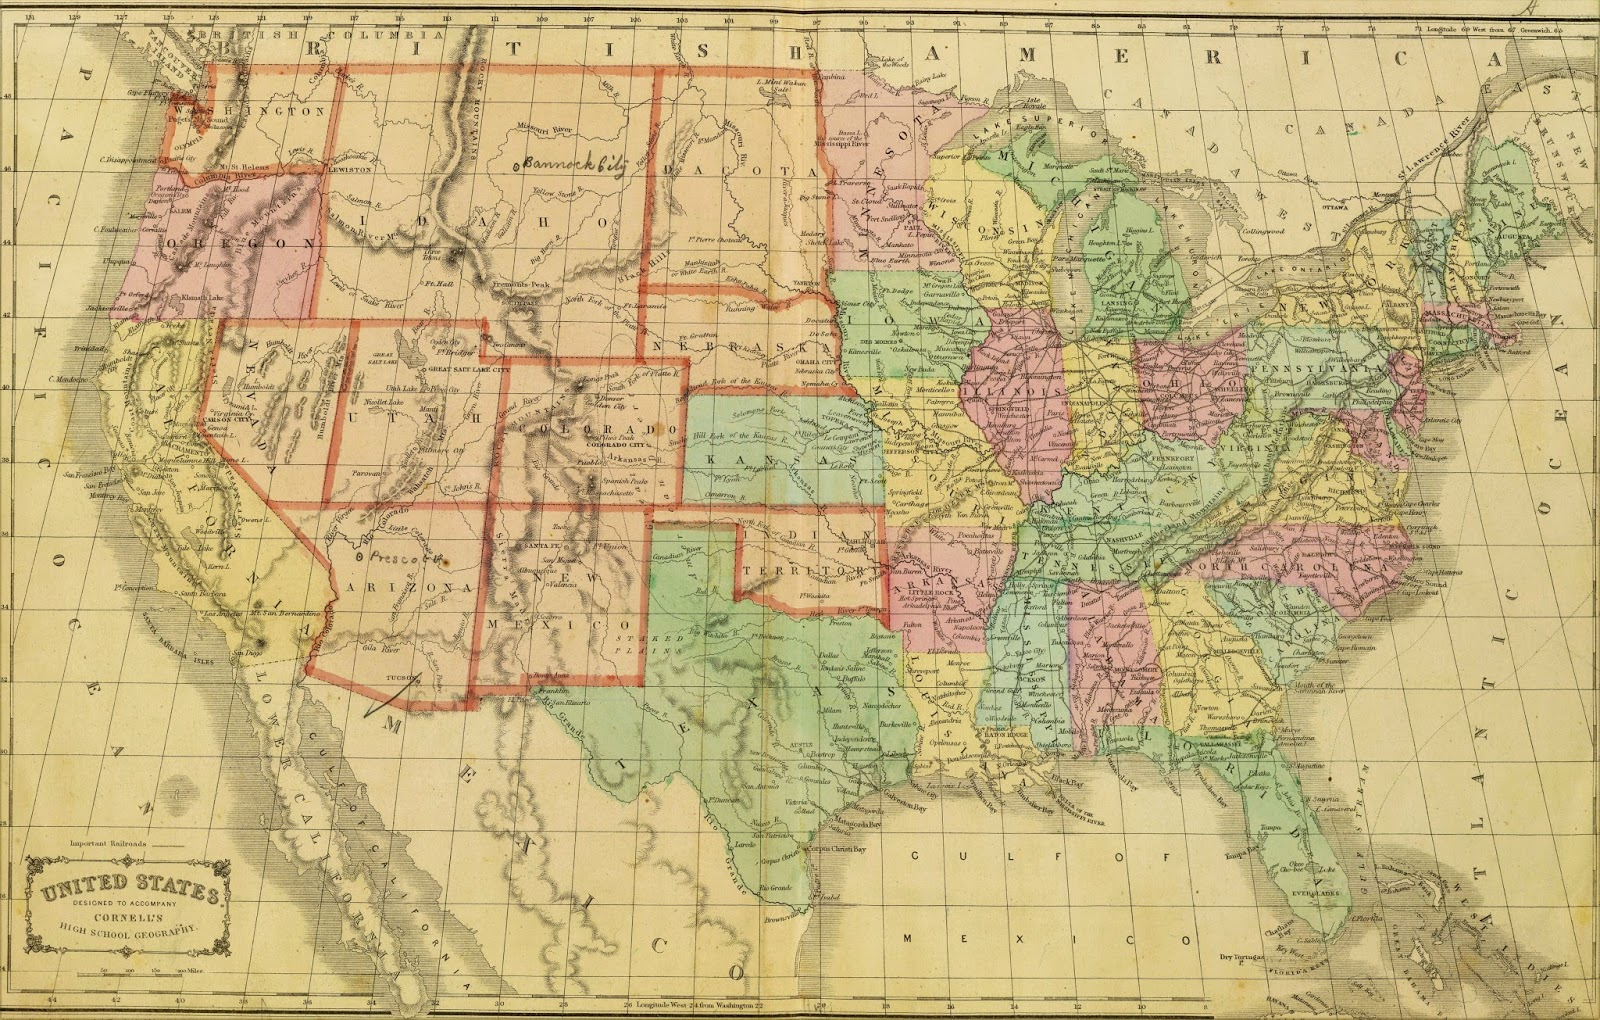 Map Of The United States By Cornell 1864 Vivid Maps - Us-map-1864